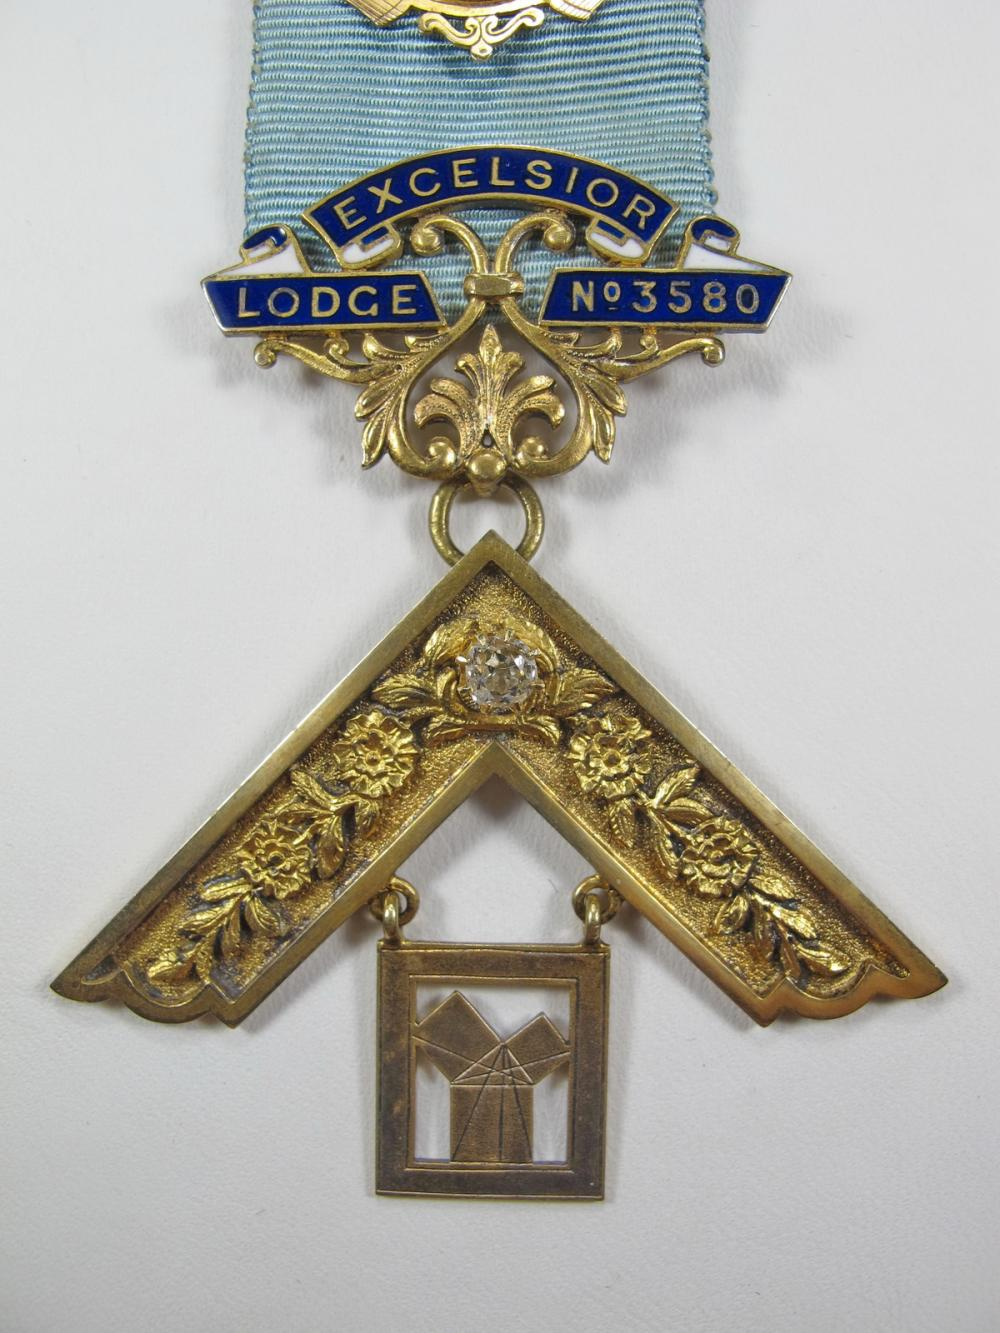 14k Gold Masonic Worshipful Master jewel